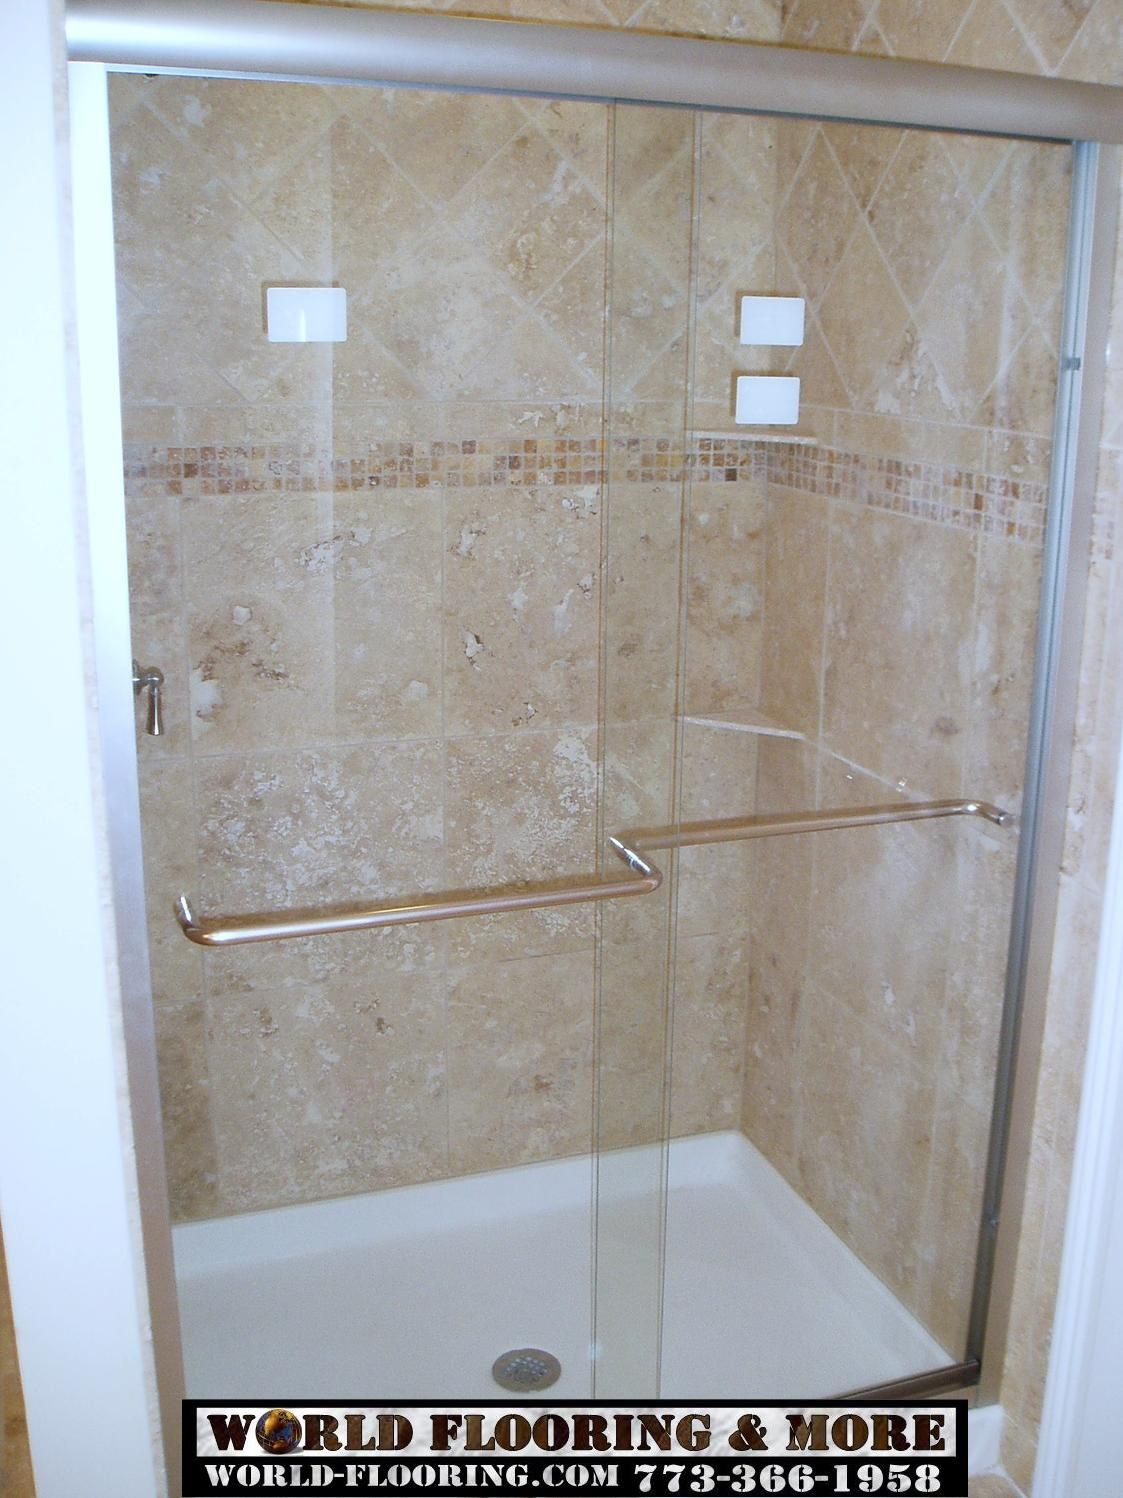 Bathroom Remodel Shower Steam Bathroom Remodeling World